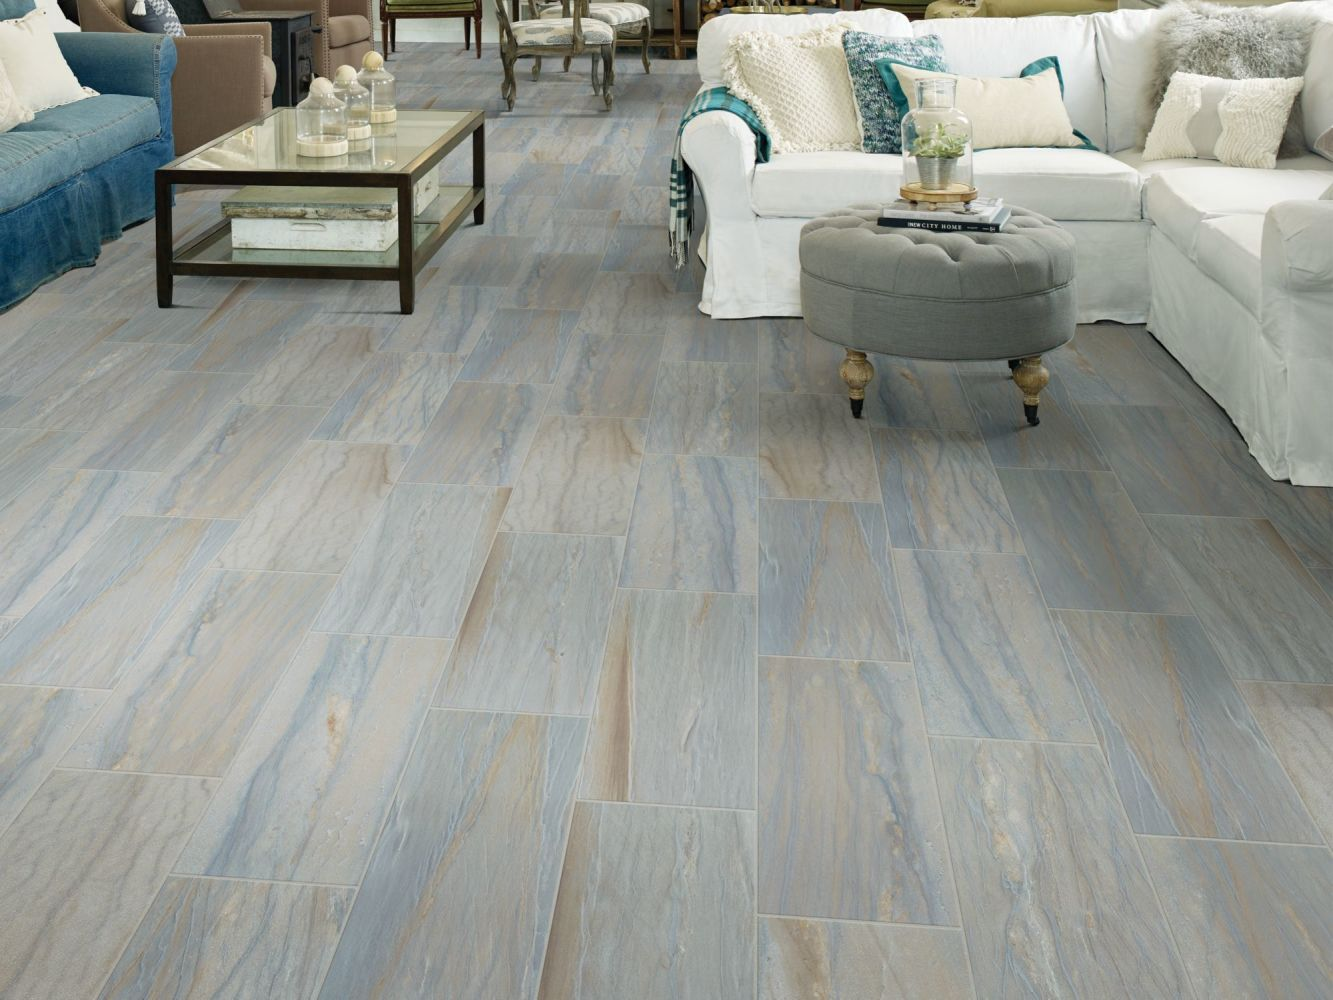 Shaw Floors Home Fn Gold Ceramic Tide Water12x24 Azul 00450_TG23B